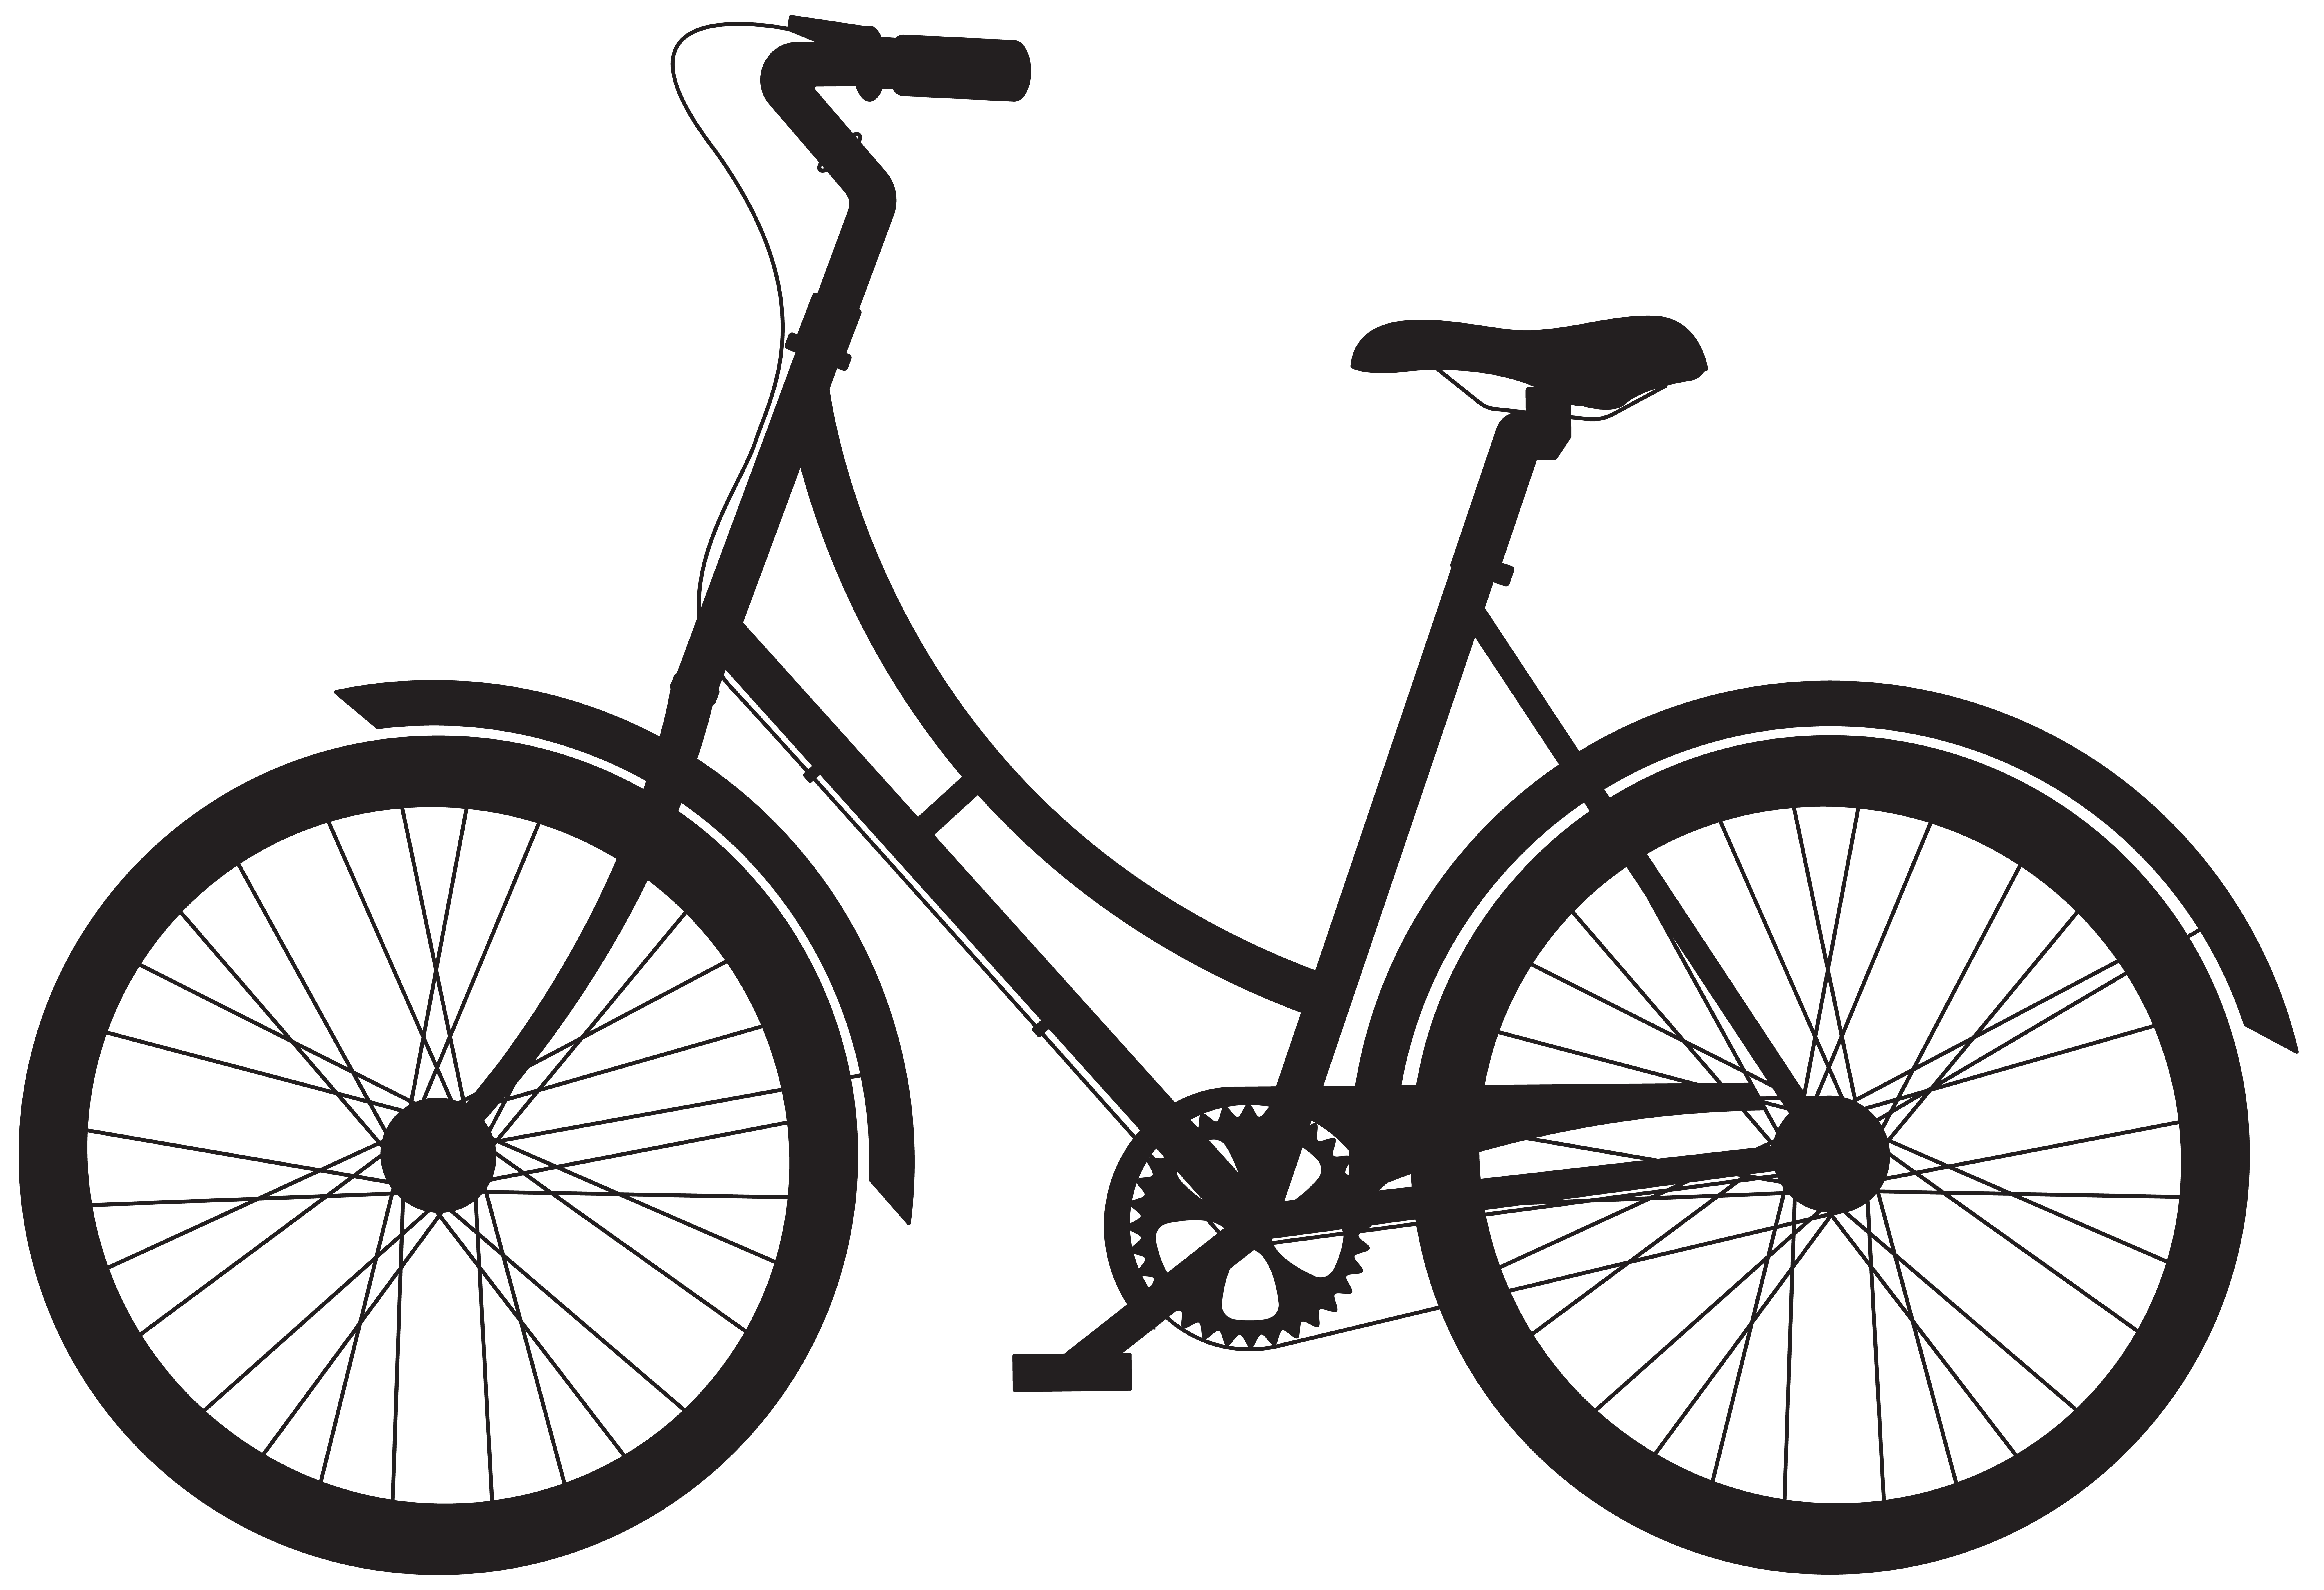 8000x5473 Bicycle Silhouette Png Clip Artu200b Gallery Yopriceville